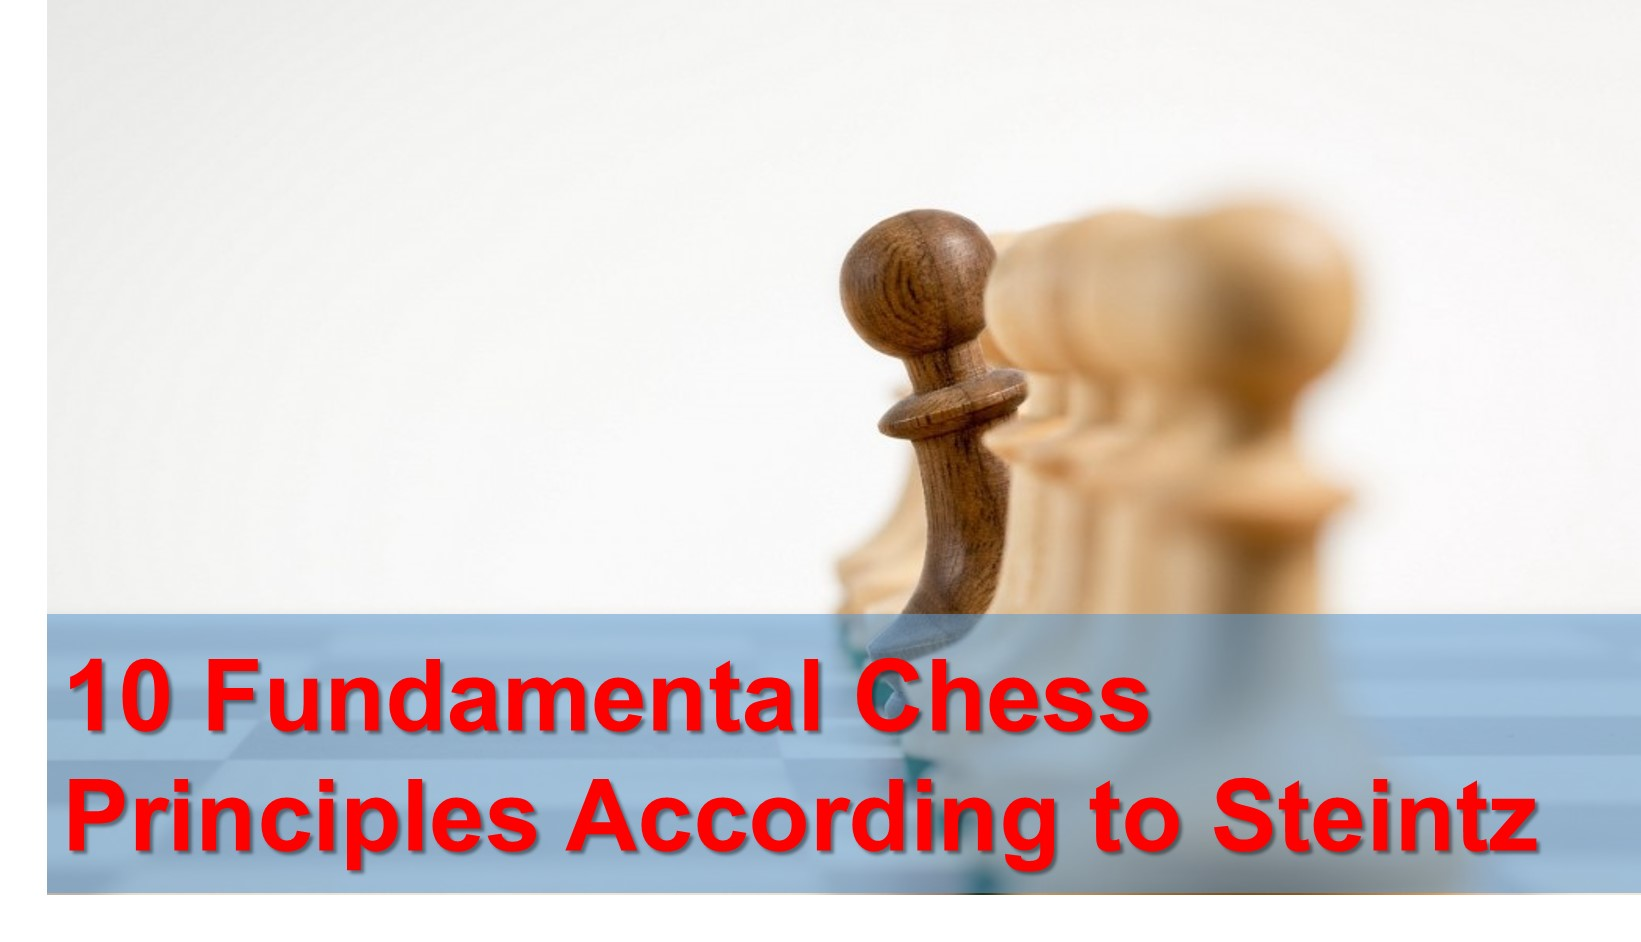 10 Fundamental Chess Principles According to Steinitz